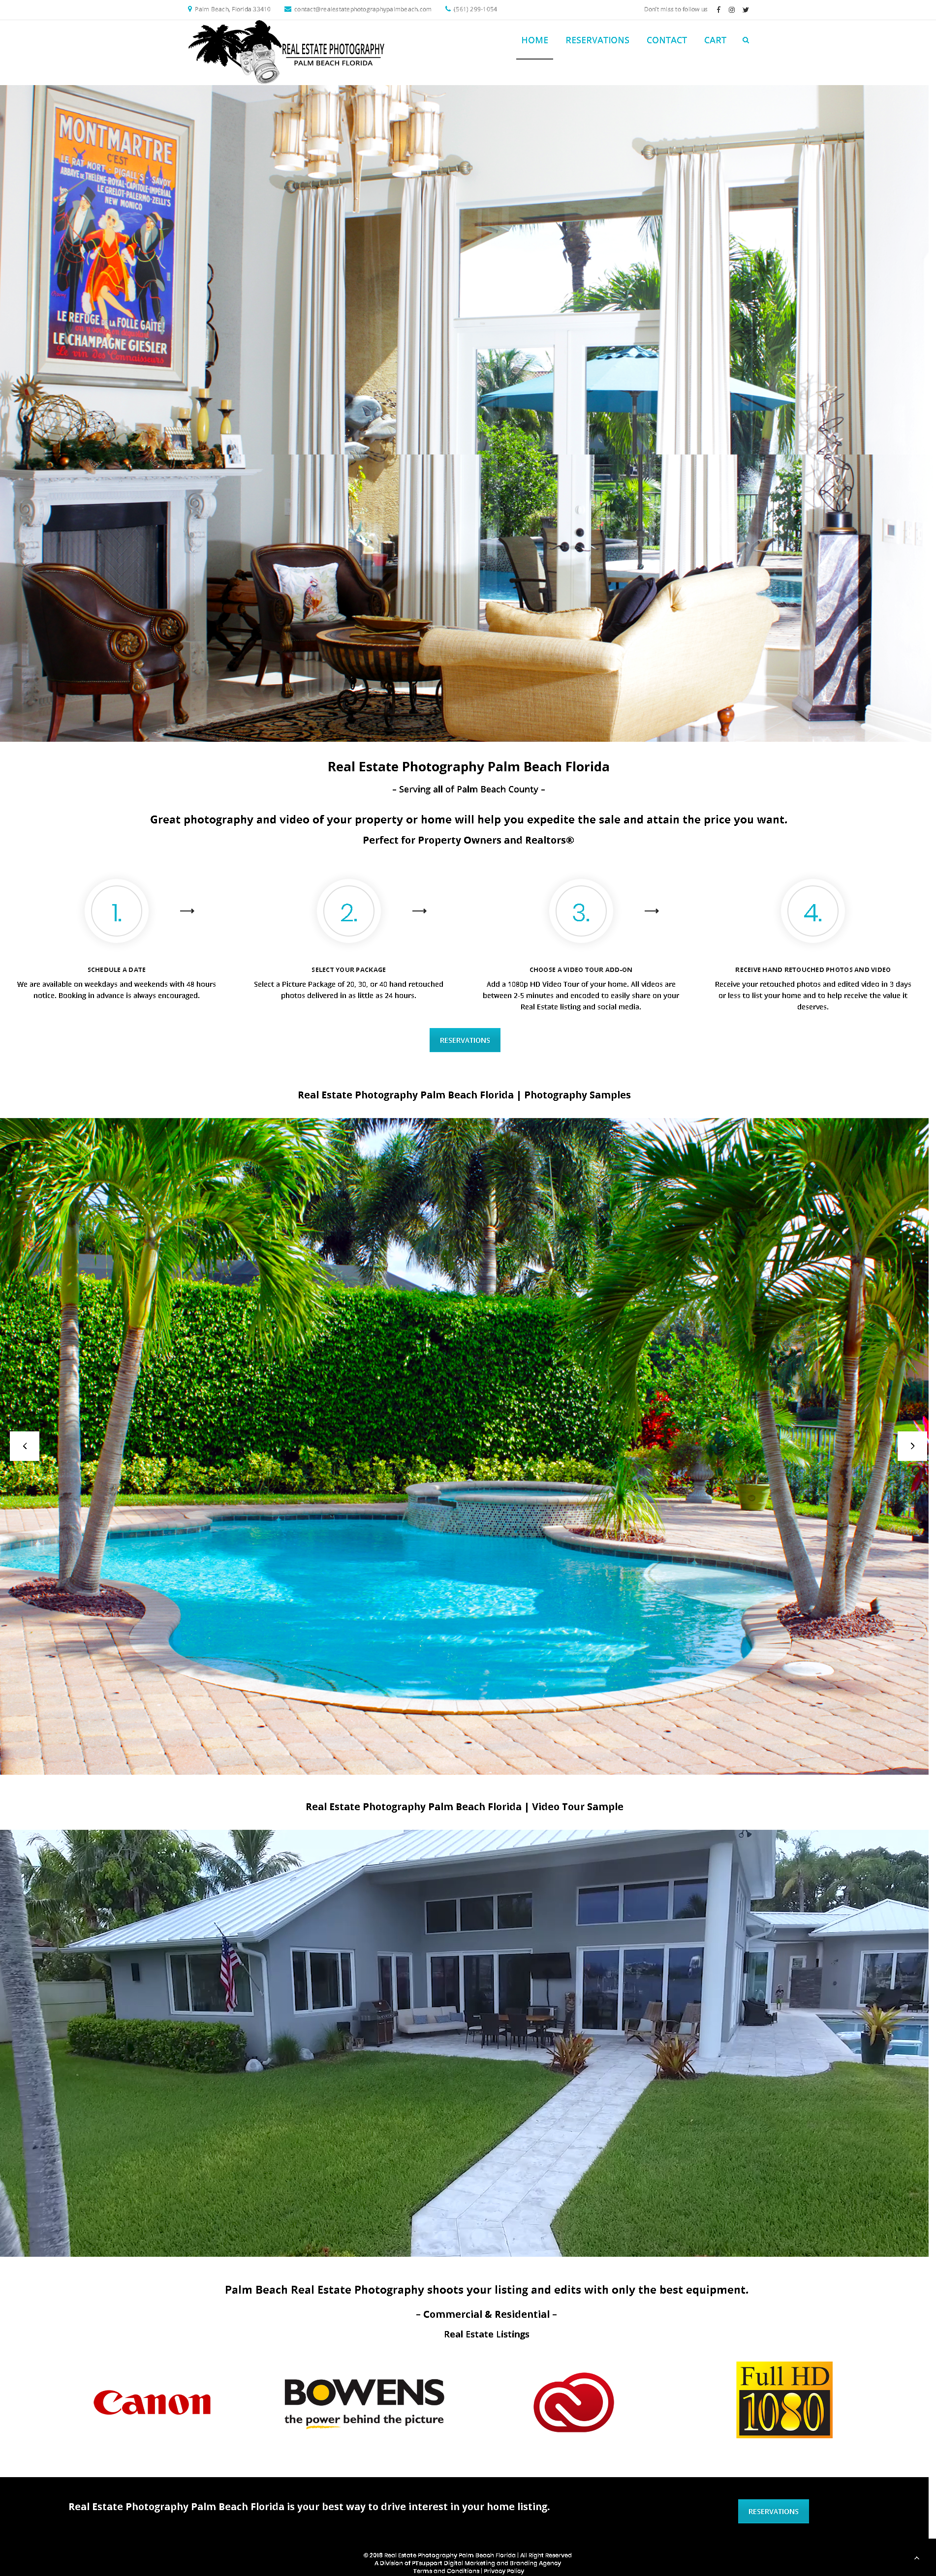 Real Estate Photography Palm Beach Florida | PTsupport Web Design, Web Development, eCommerce, Branding, SEO local organic